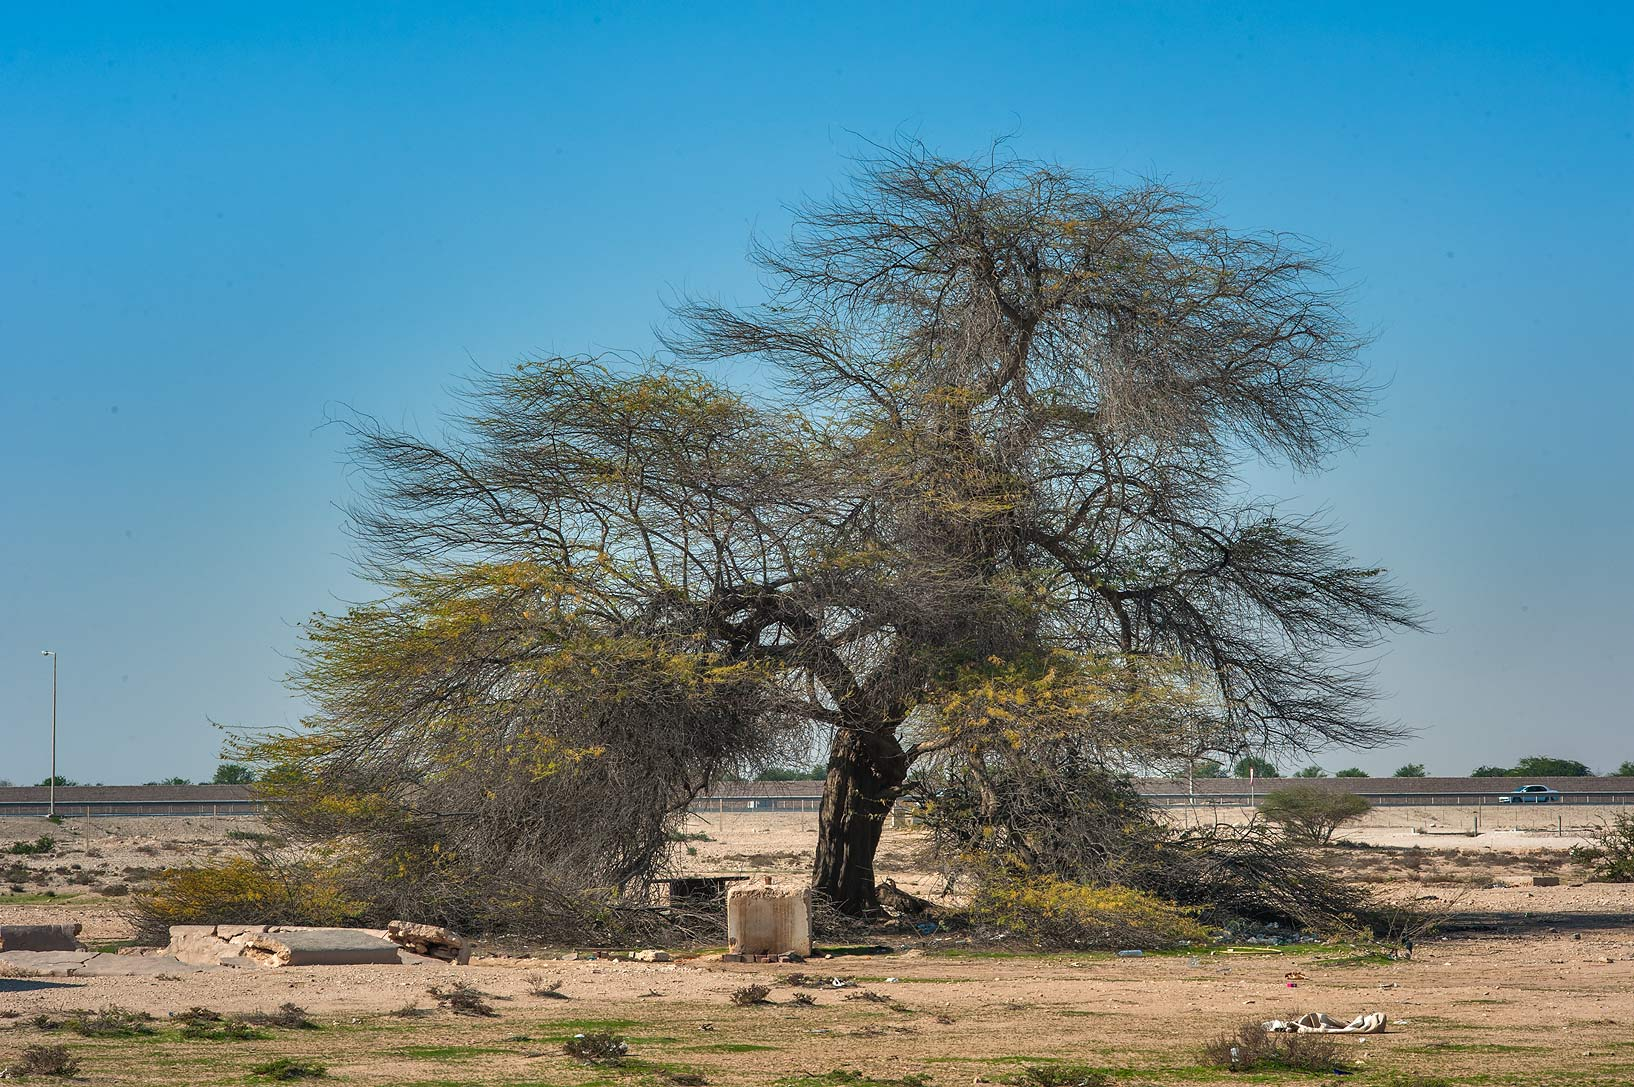 Big mesquite tree (Prosopis juliflora) in area of...Husayn Water Well near Simaisma. Qatar